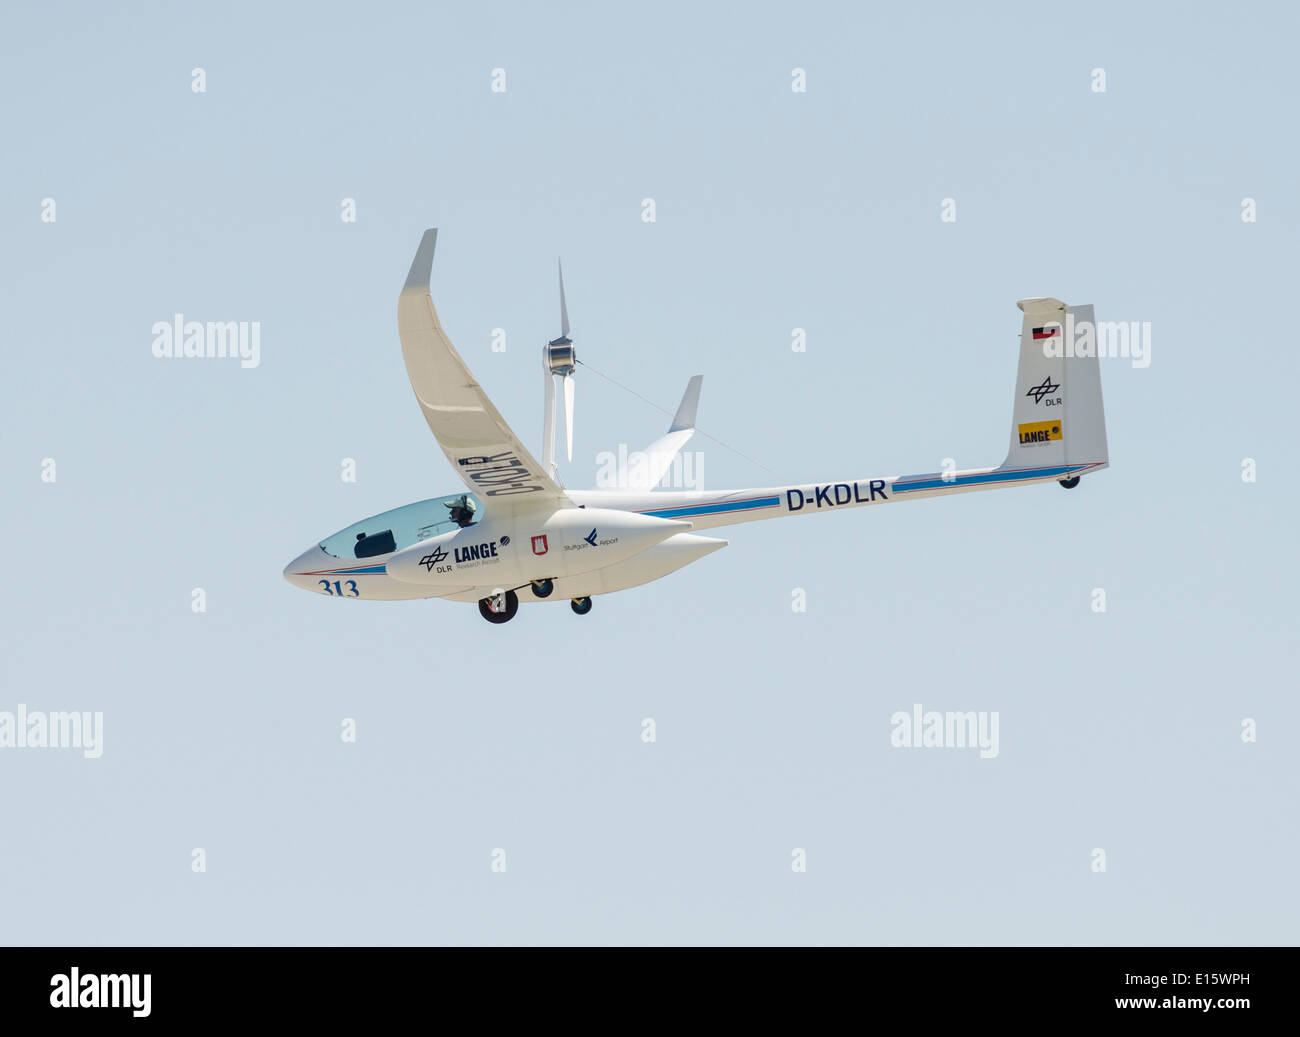 Antares DLR-H2 fuel cell powered plane in flight. First manned plane running on power from fuel cells. - Stock Image